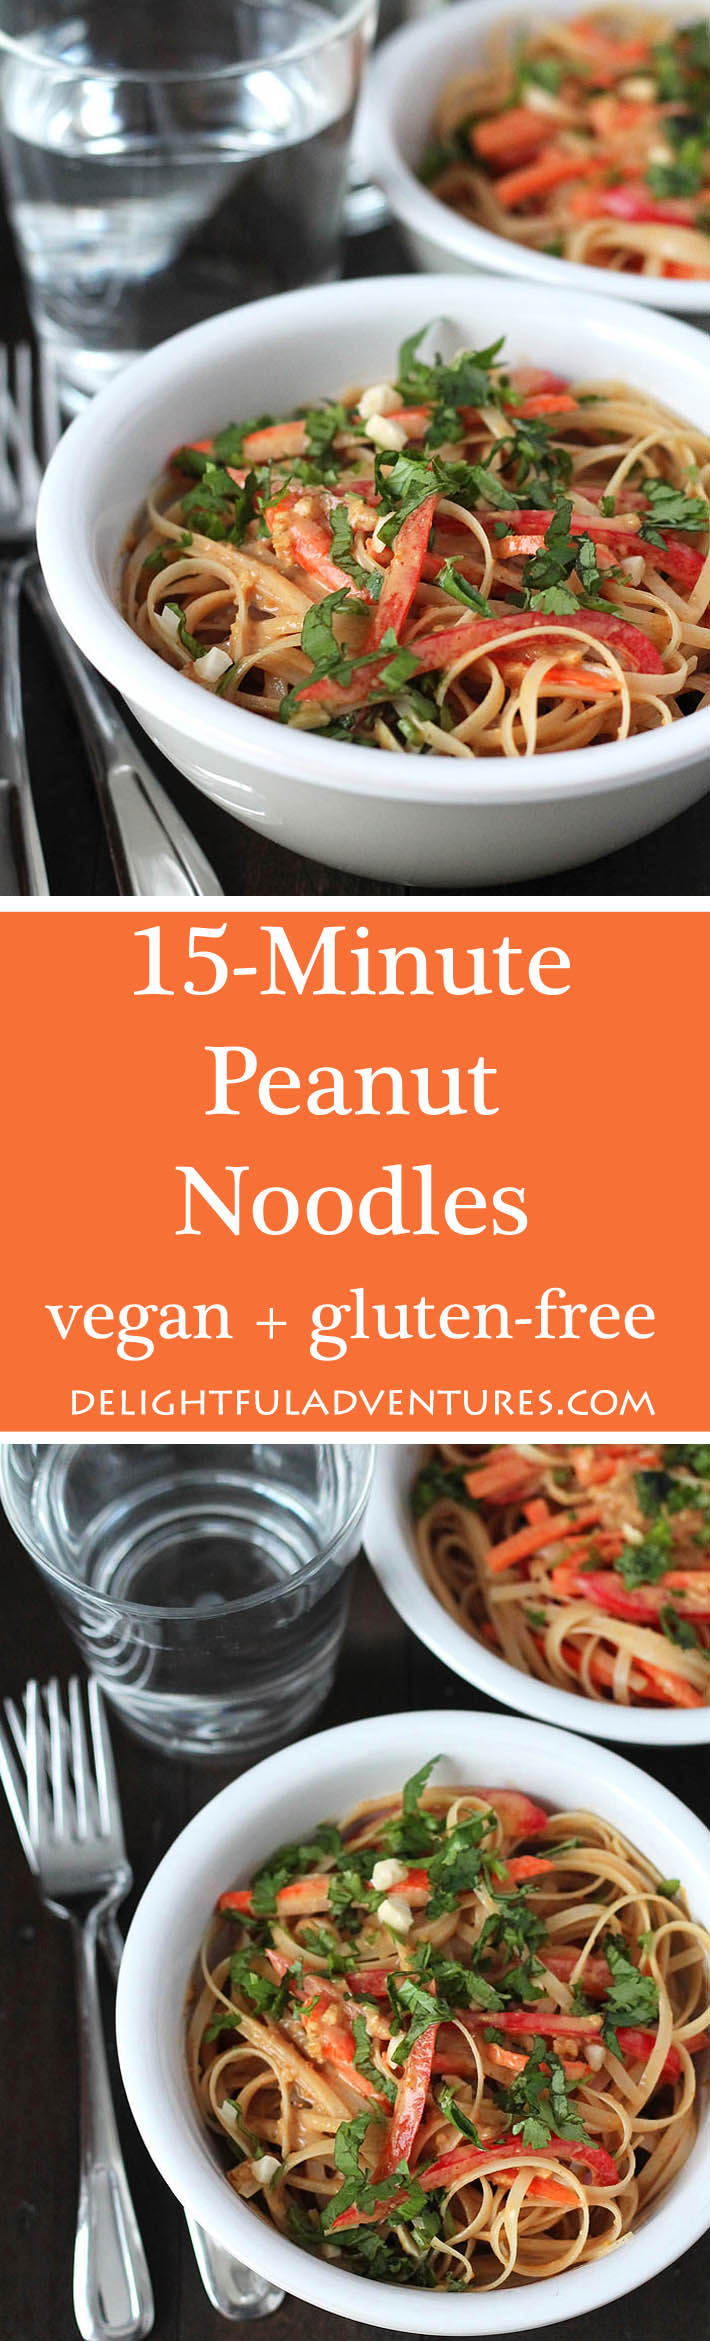 This 15 minute vegan peanut noodles recipe from the book,